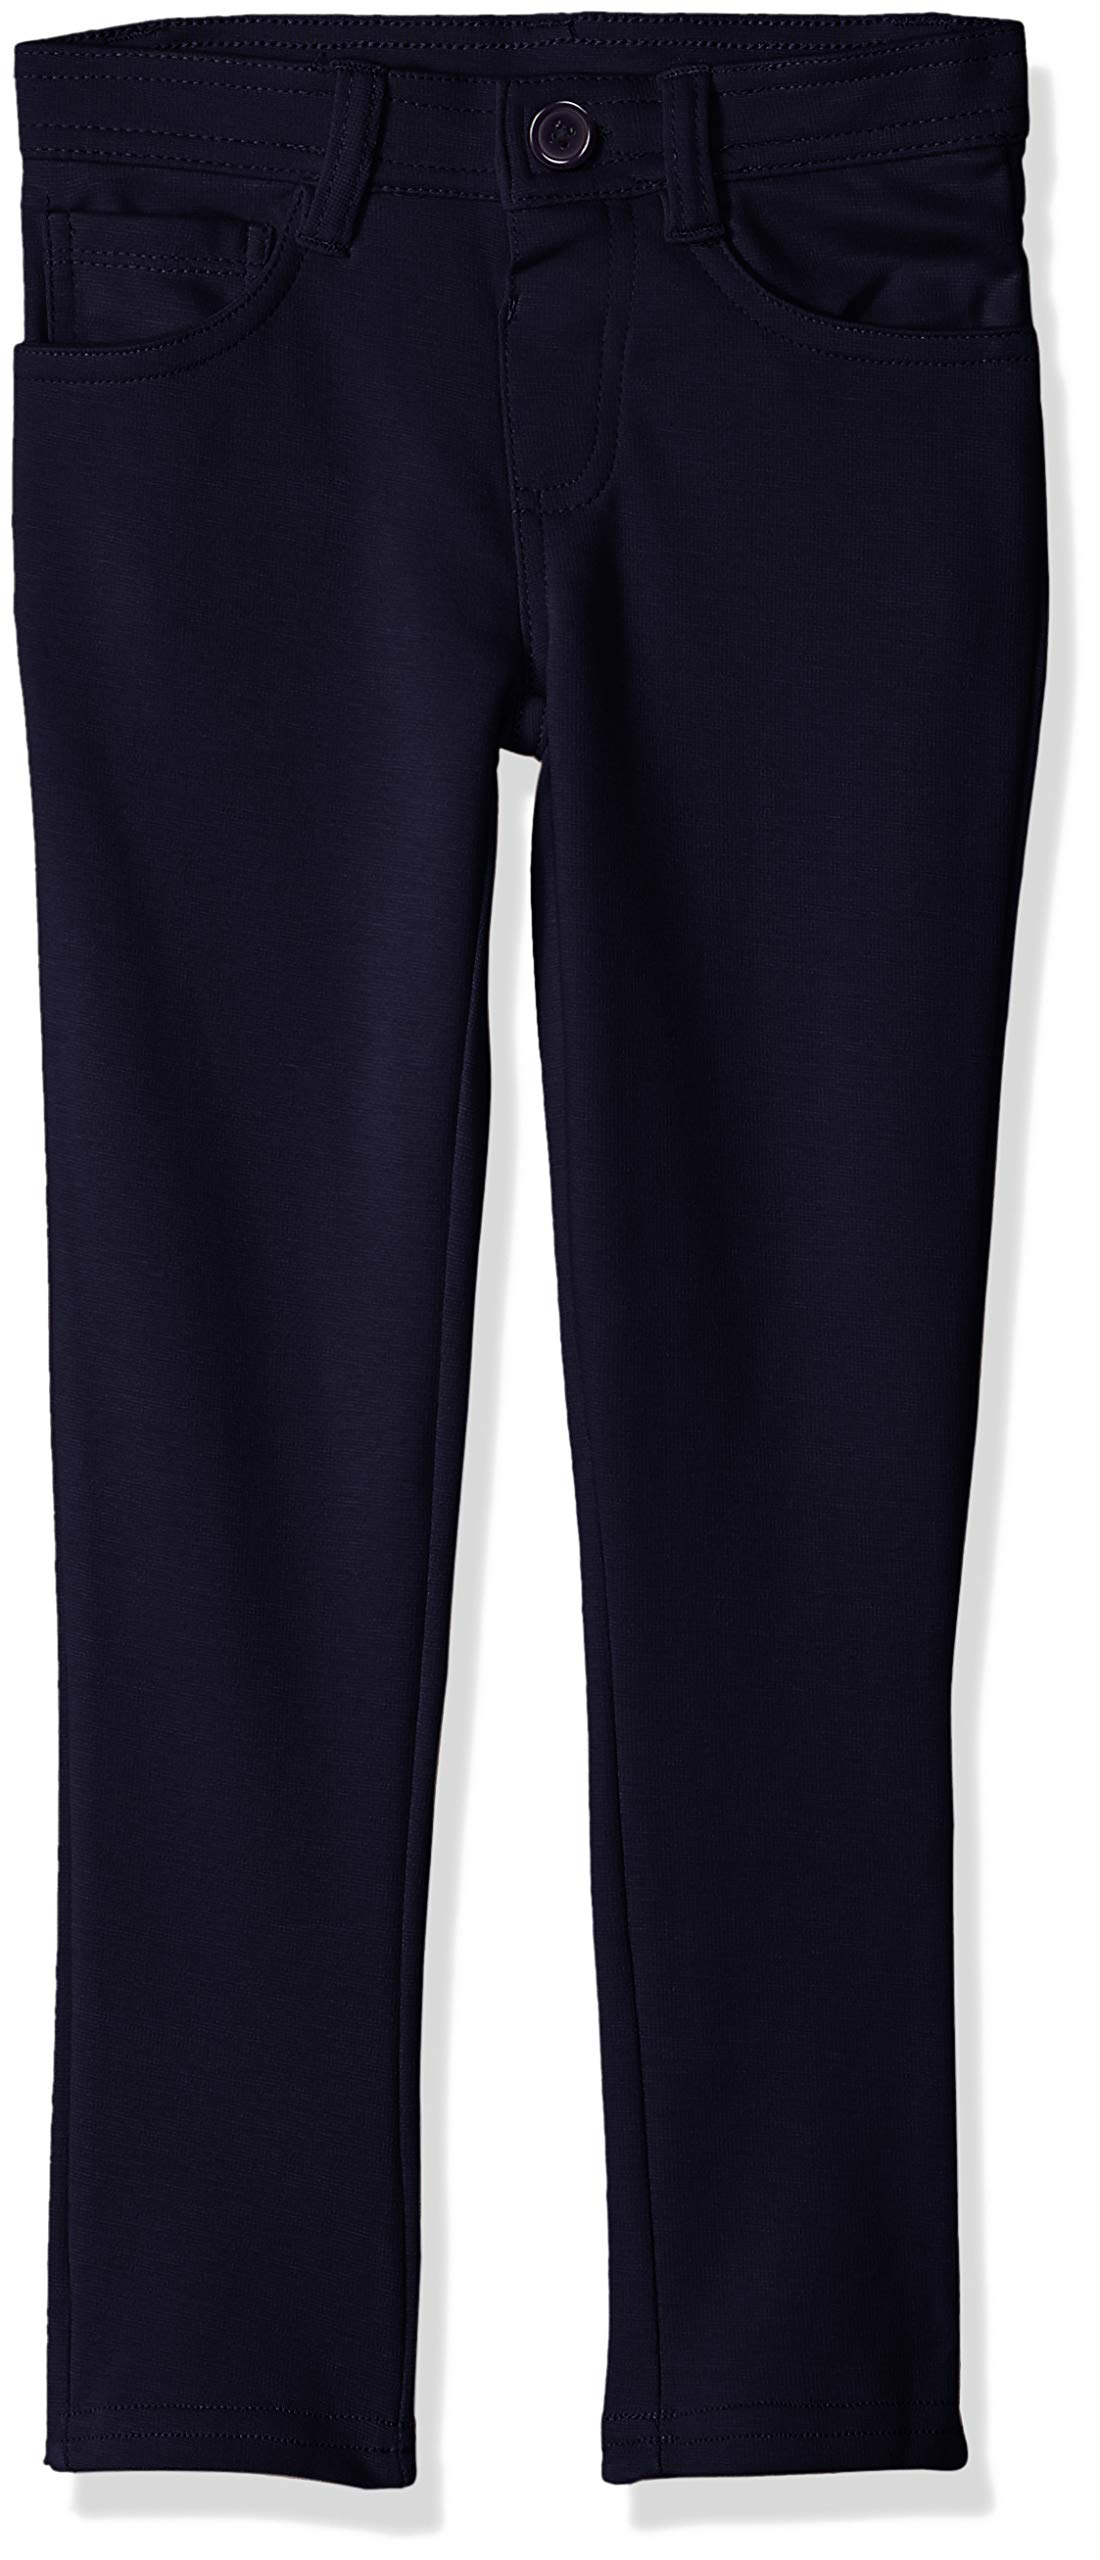 U.S. Polo Assn. Girls' Little Pull-On Ponte Knit Skinny Fit Pant, Navy, 4